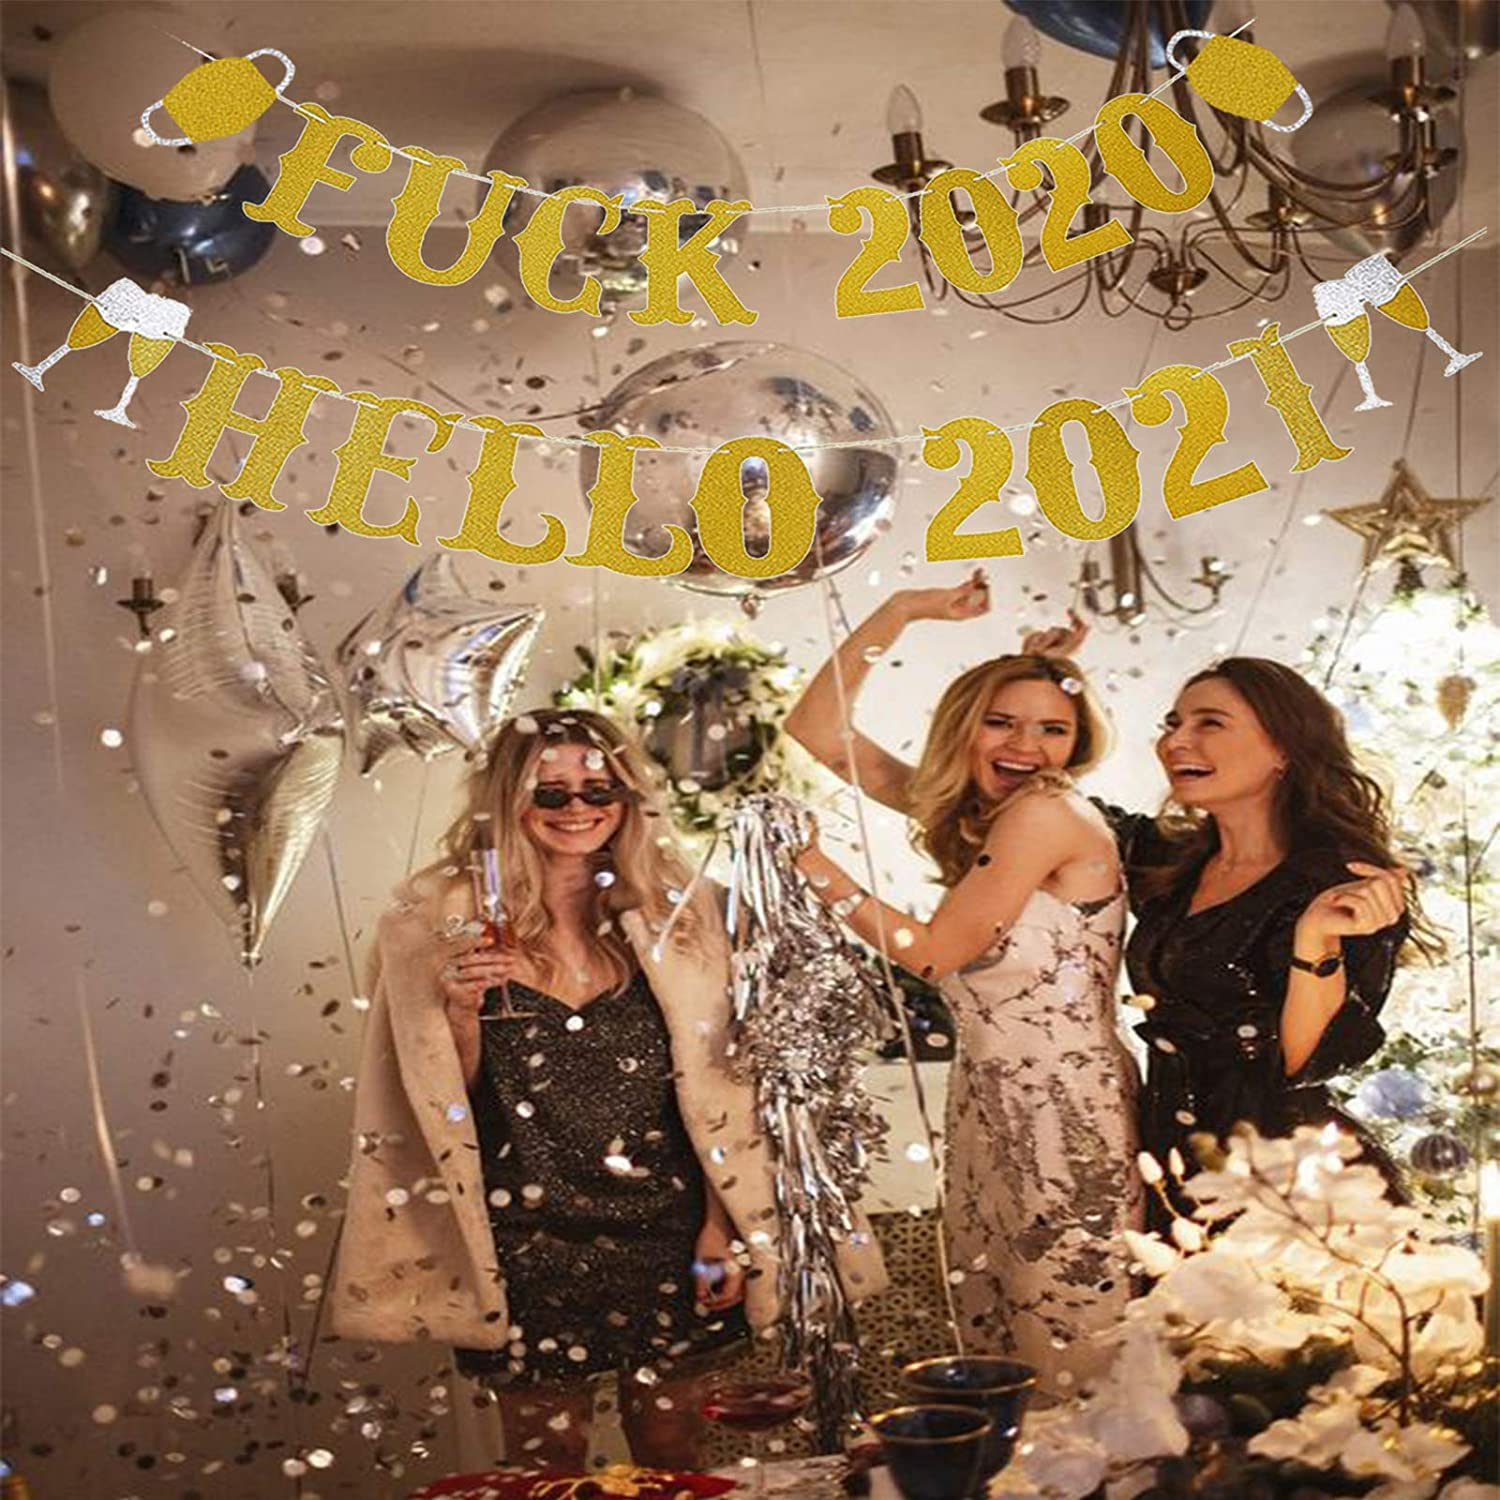 Gold 2 2021 New Years Eve Party Decorations New Year Banner New Years Eve Party Supplies 2021-Gold Glitter Farewell 2020 Hello 2021 Banner Gold Glitter |2020 Farewell Banner